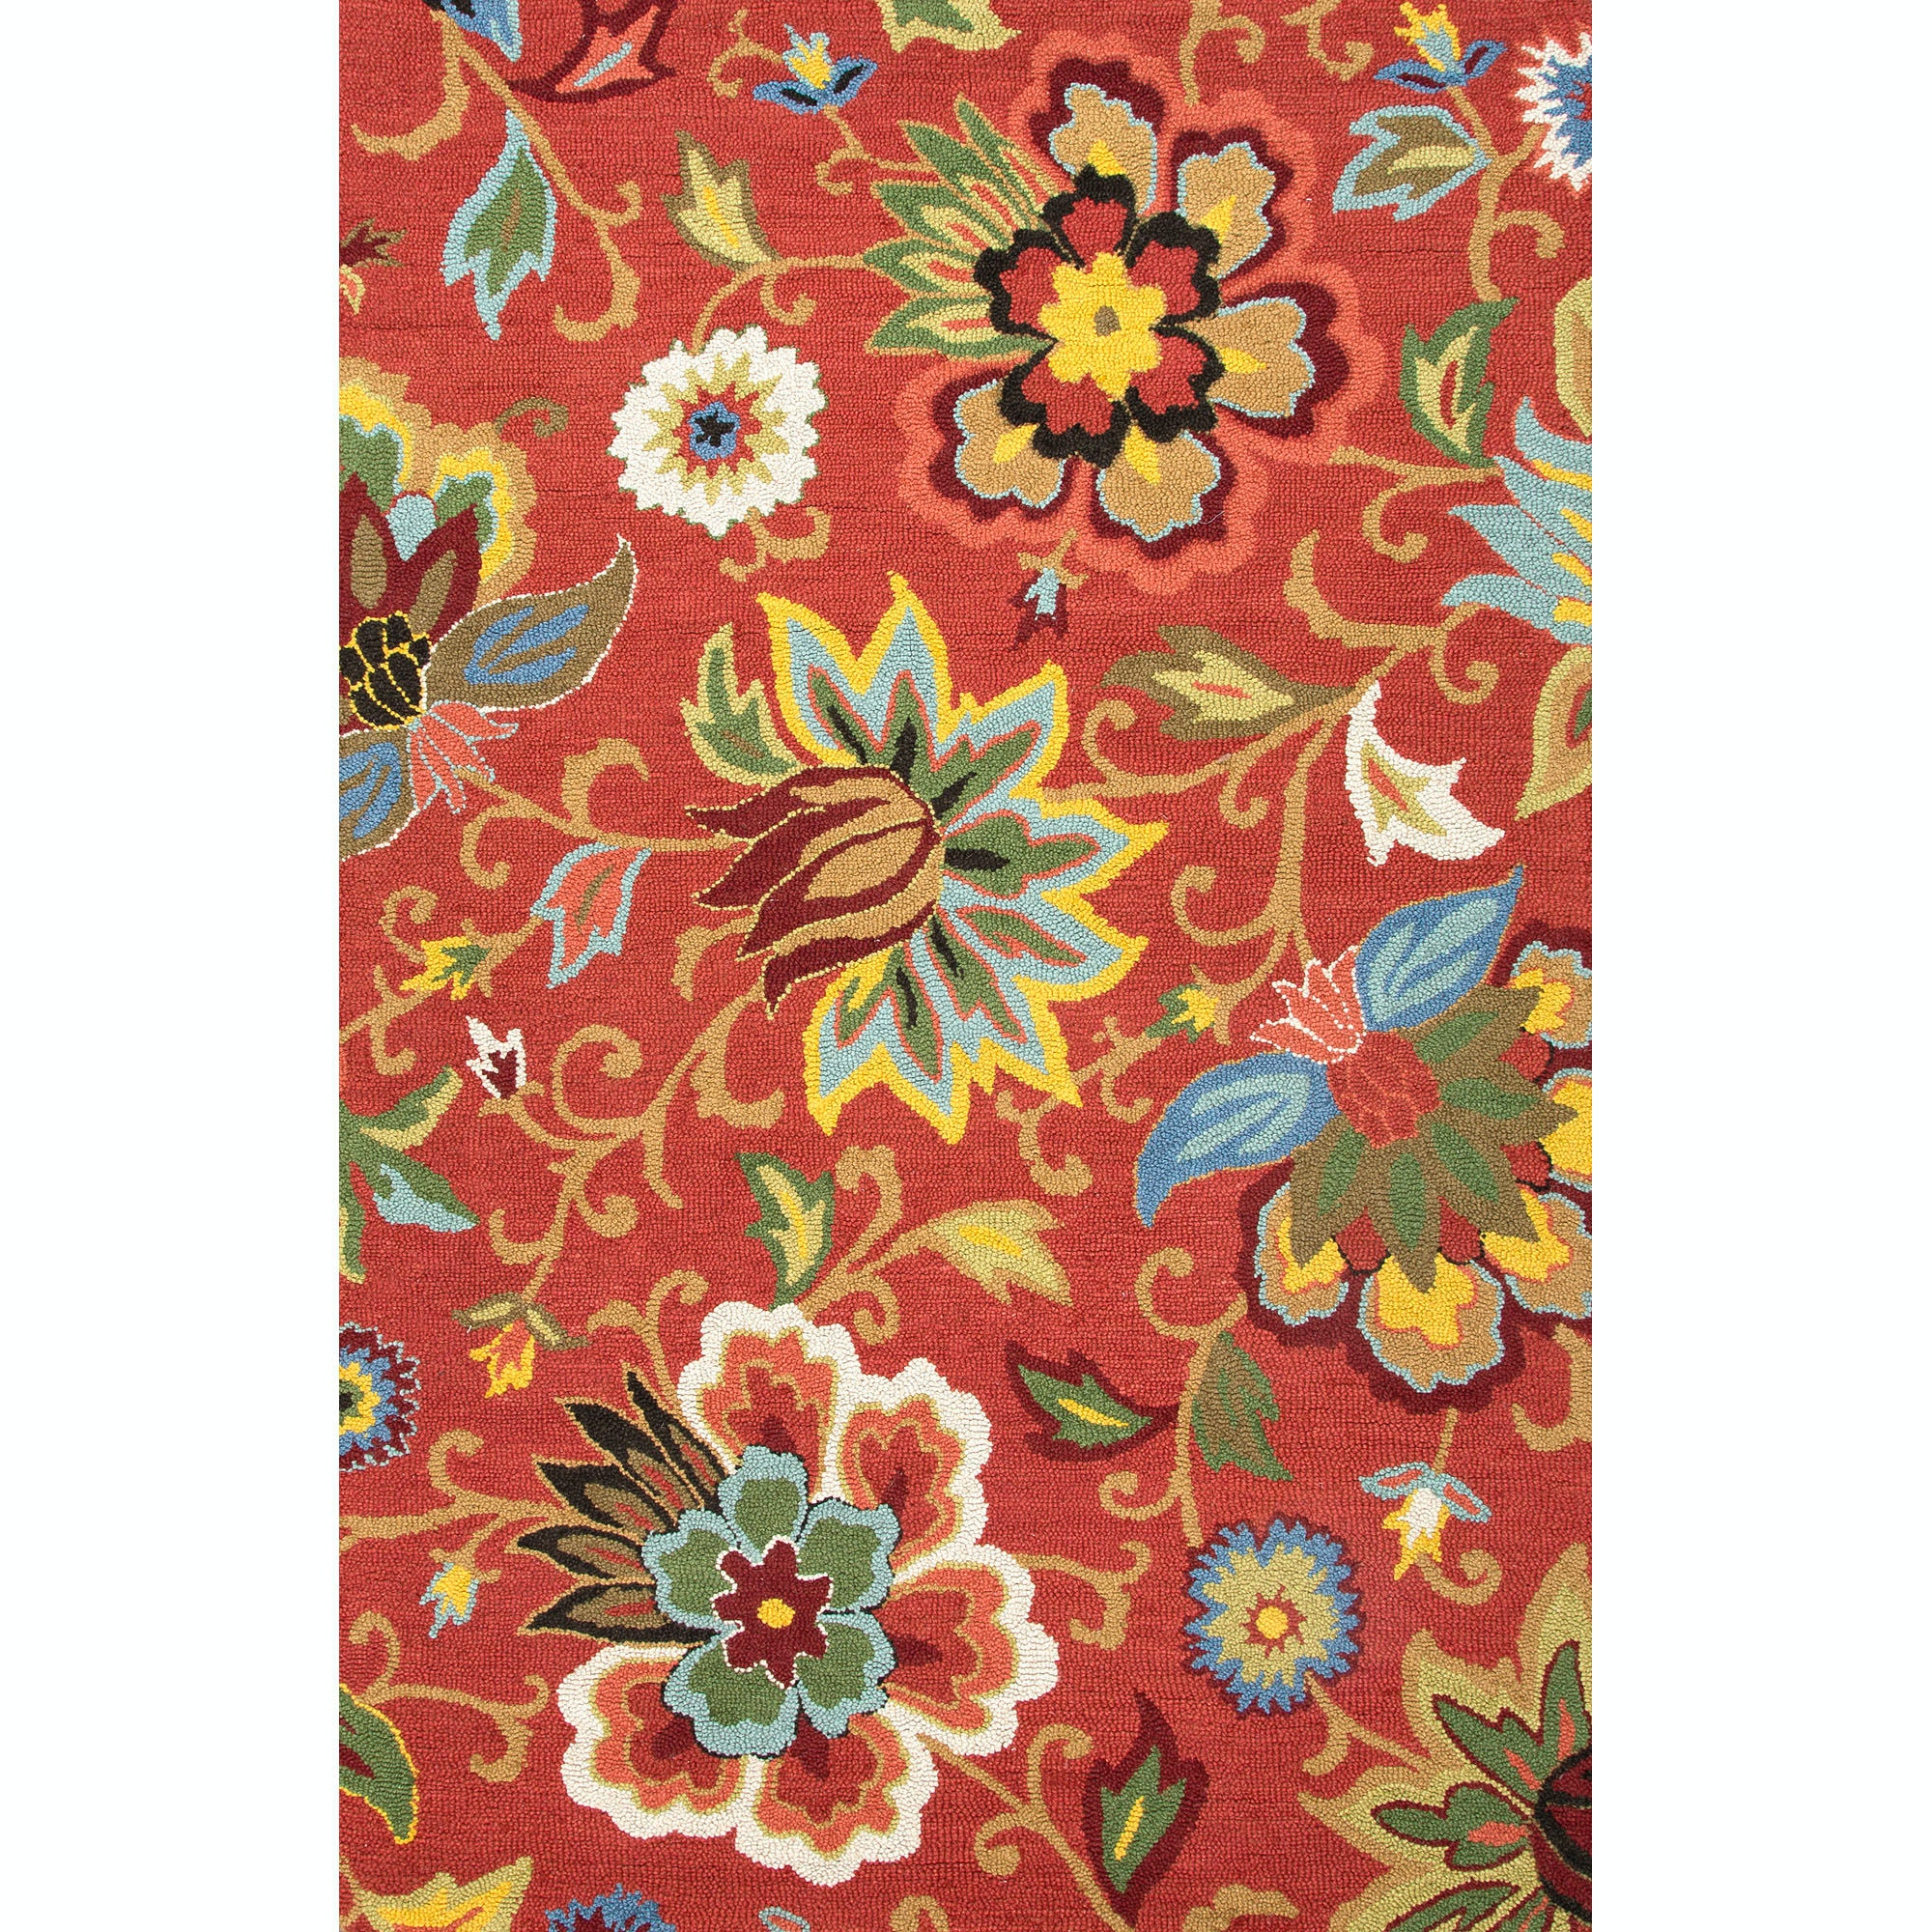 Jaipur Rugs Floor Coverings Hand Tufted Textured Wool Red Blue Area